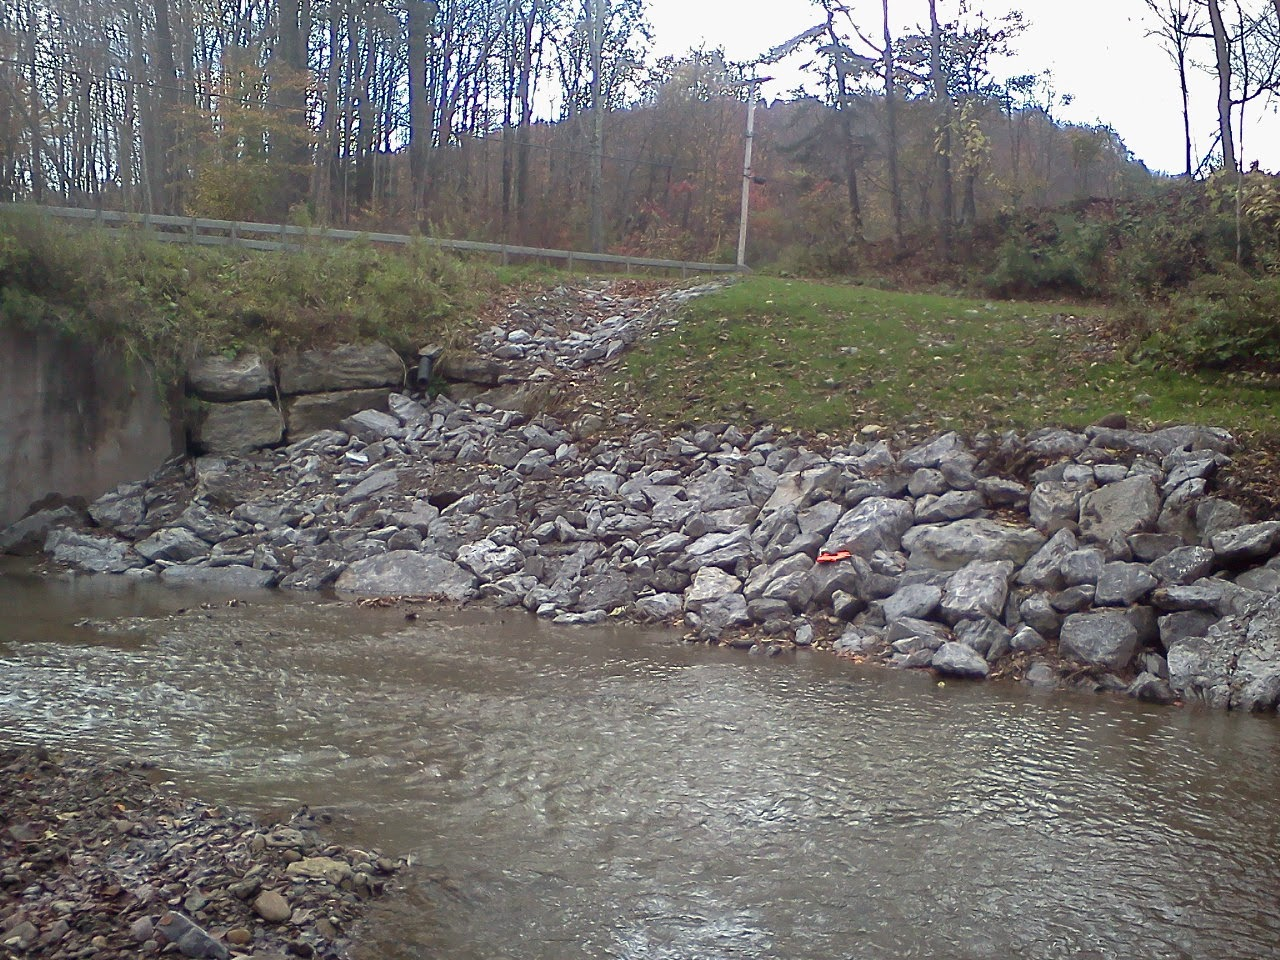 Completed Bank Protection Project - Gooseneck Creek, Ashford